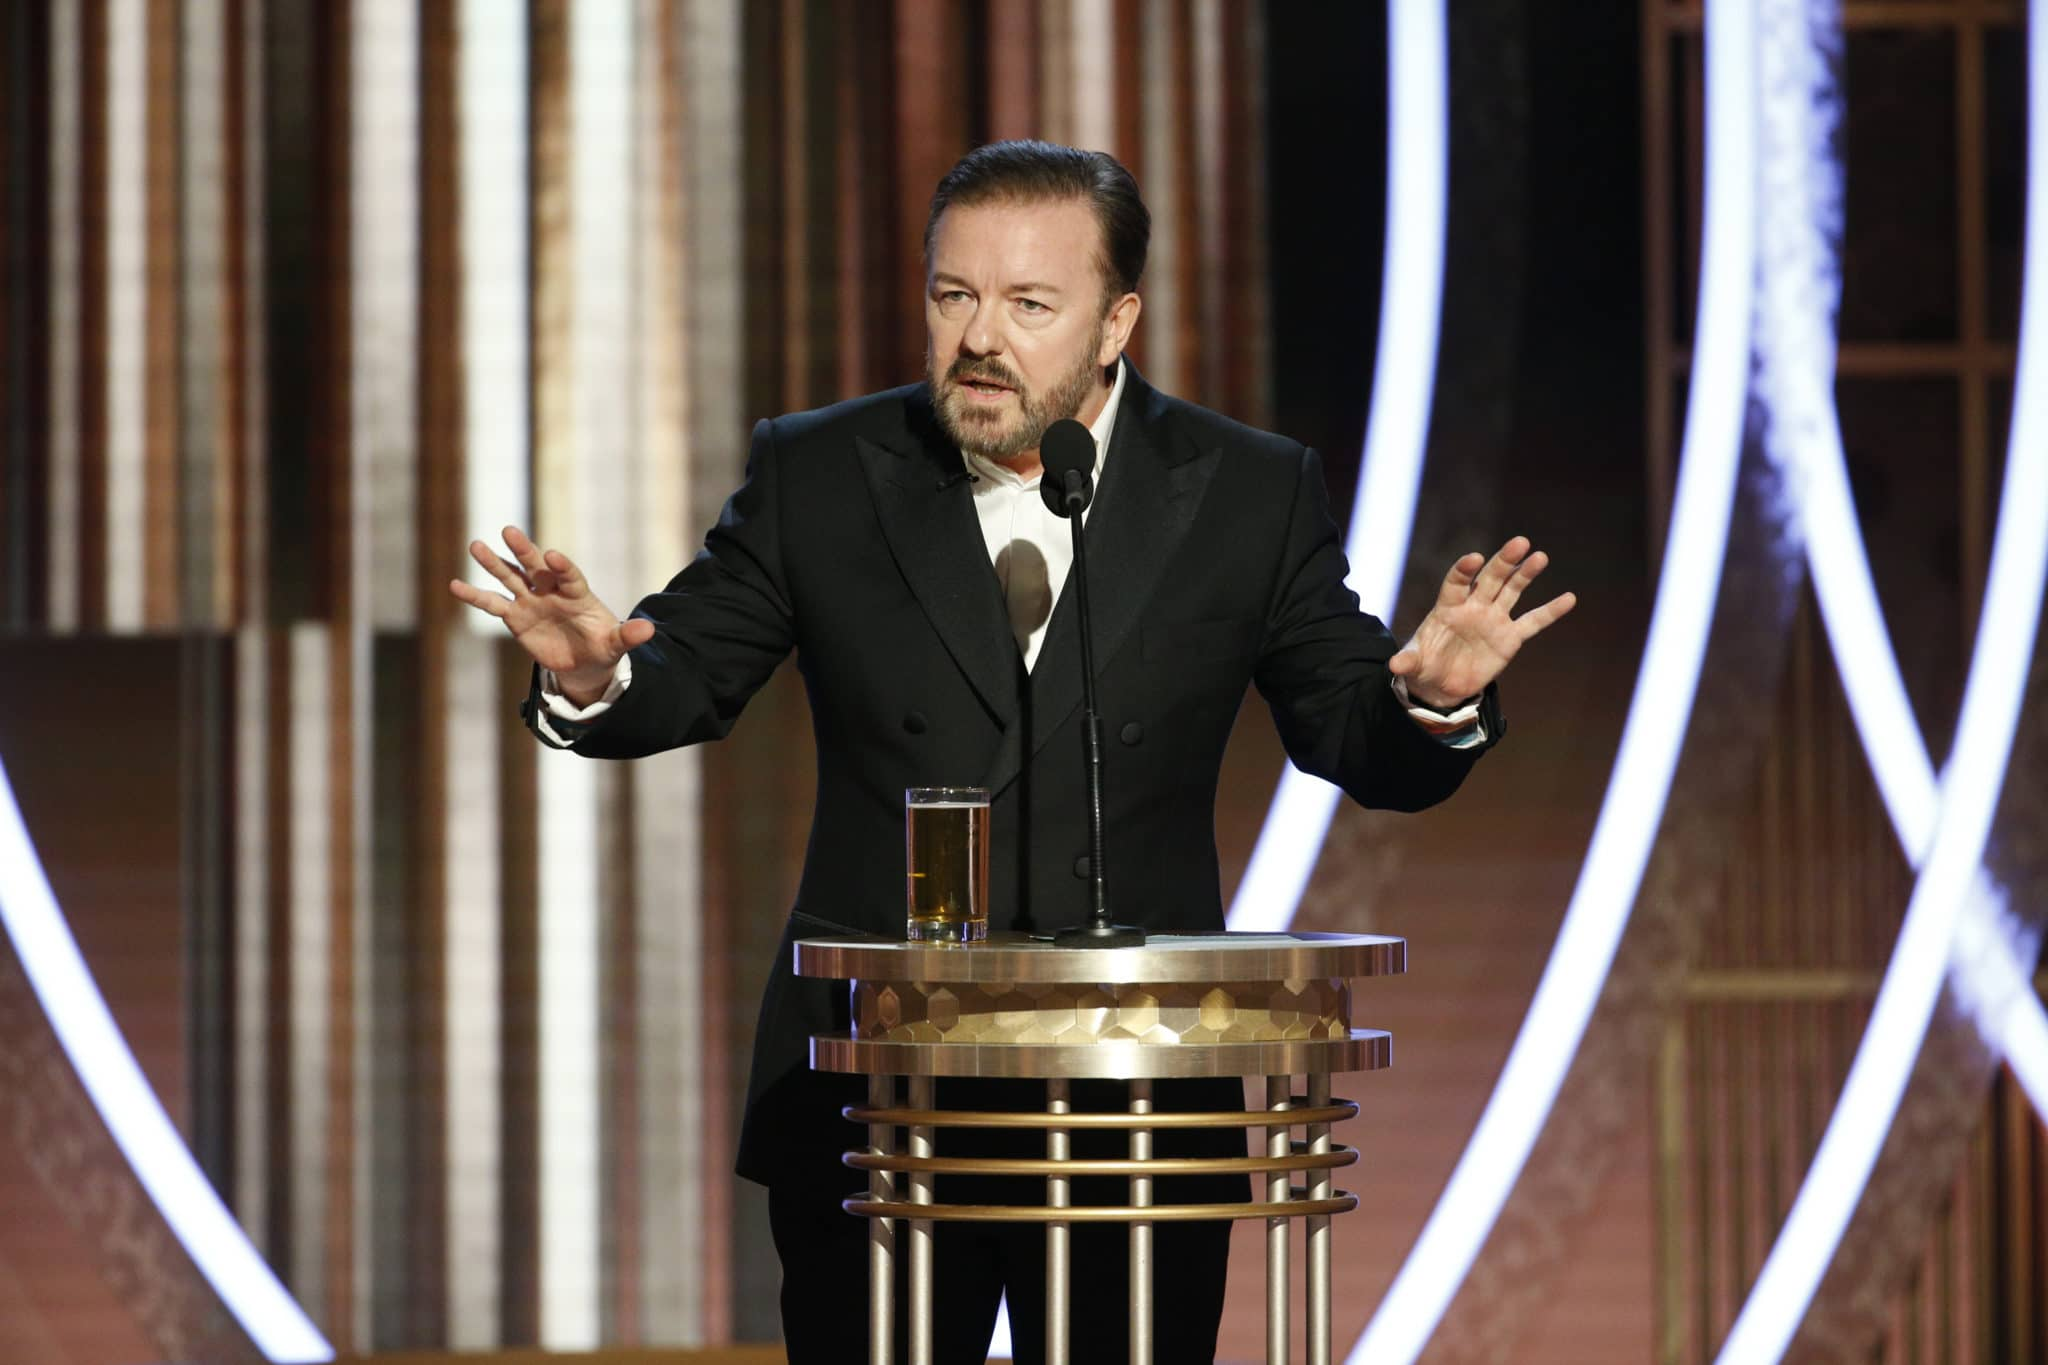 He's Back: Ricky Gervais RIPS Self-Righteous Celebs Before Academy Awards Show